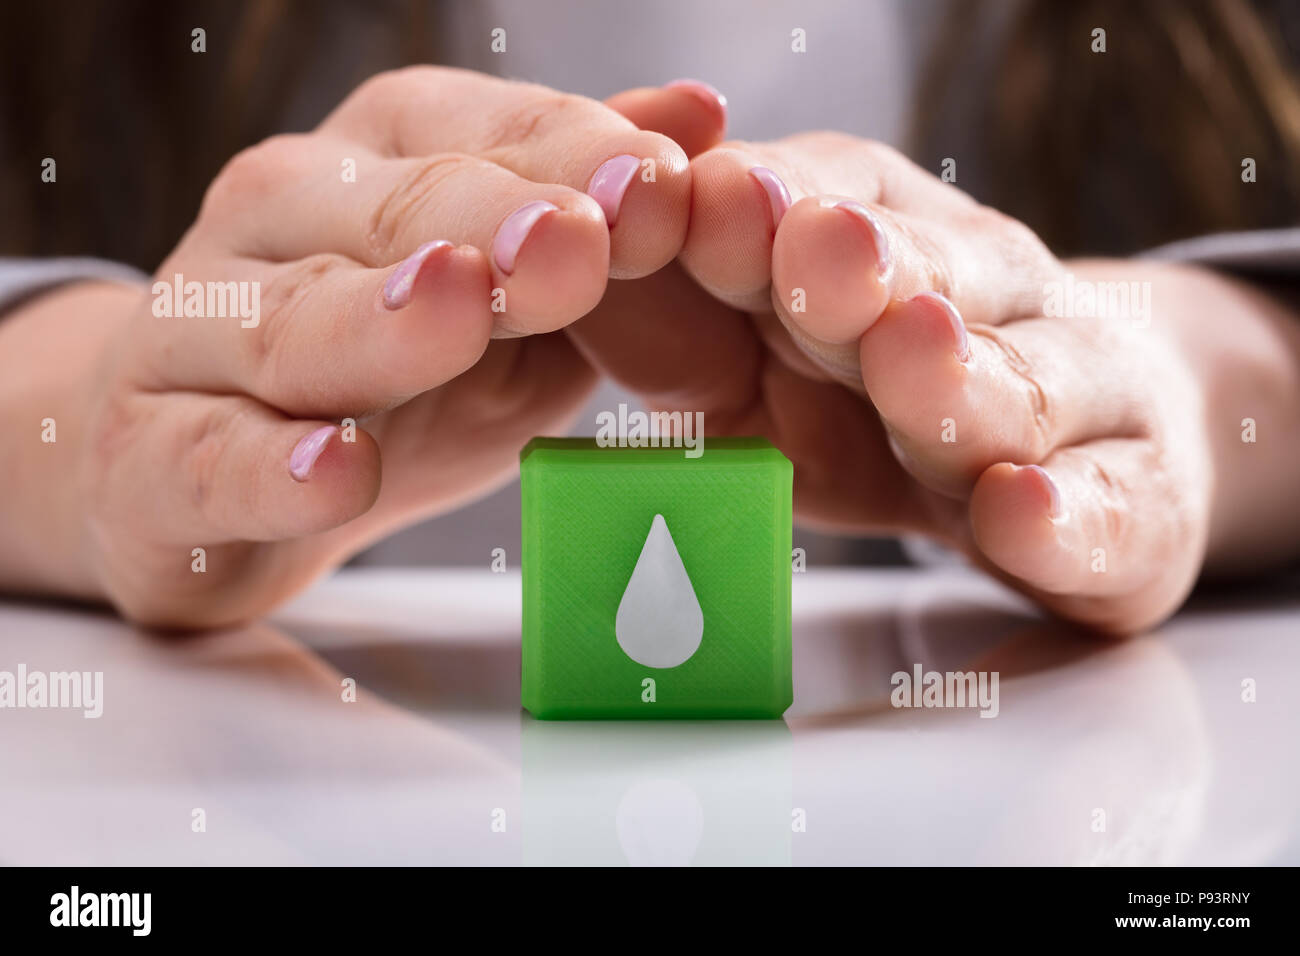 Woman's Hand Protecting Green Cubic Block With Water Drop Icon Over Desk - Stock Image